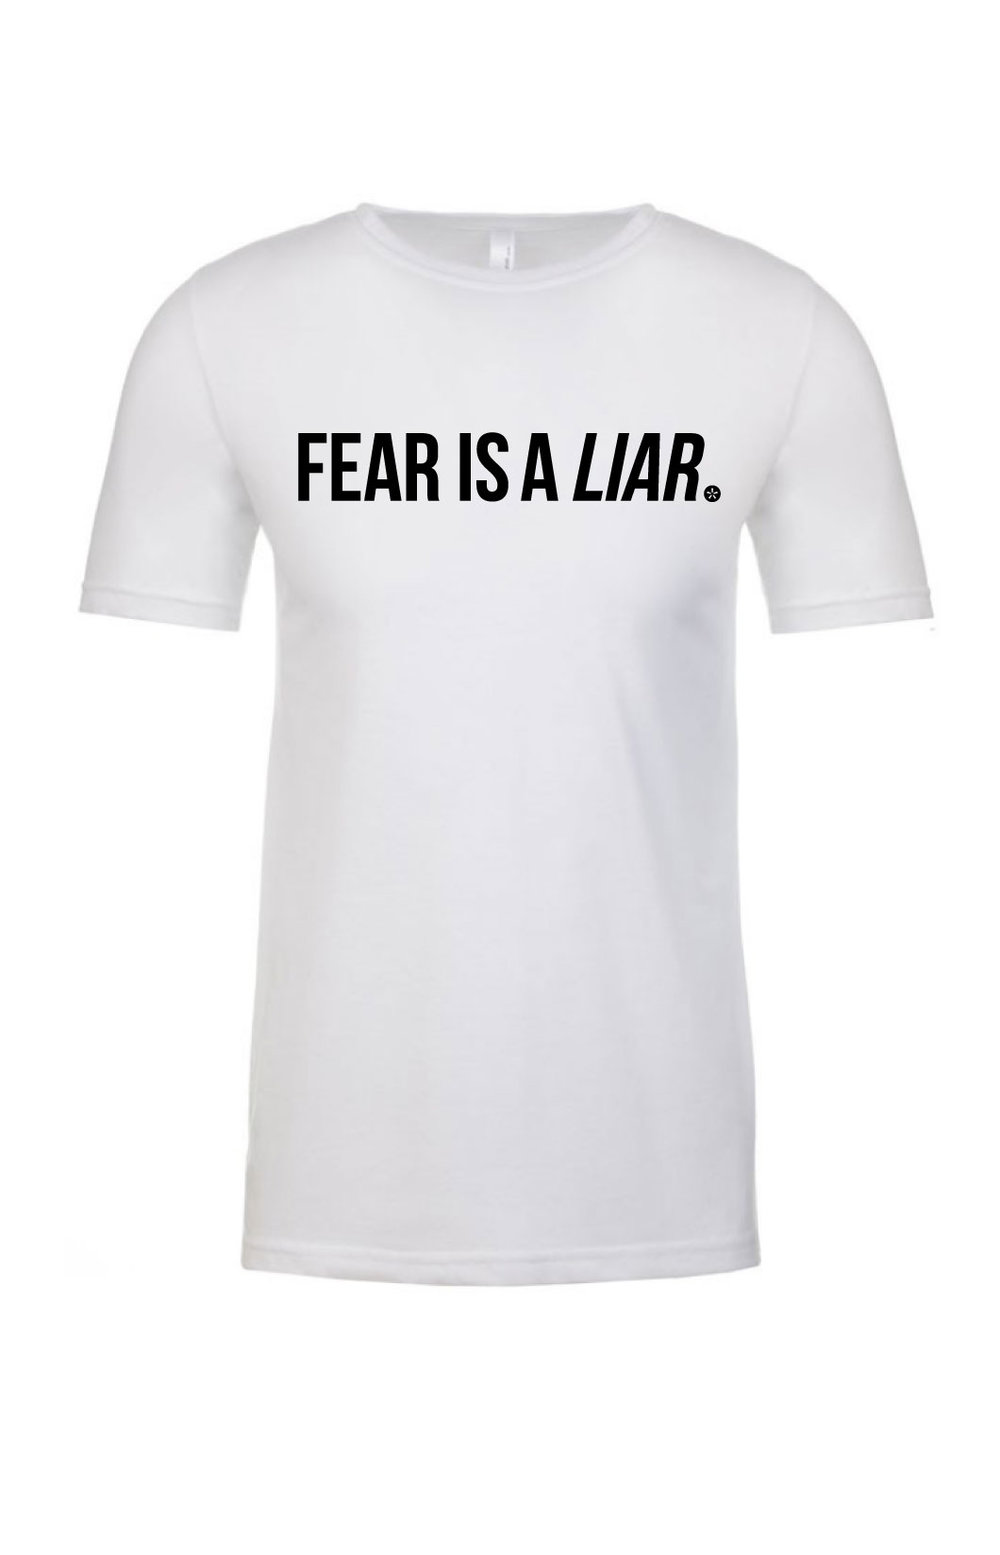 Fear-is-a-liar-tee-mock-up.jpg